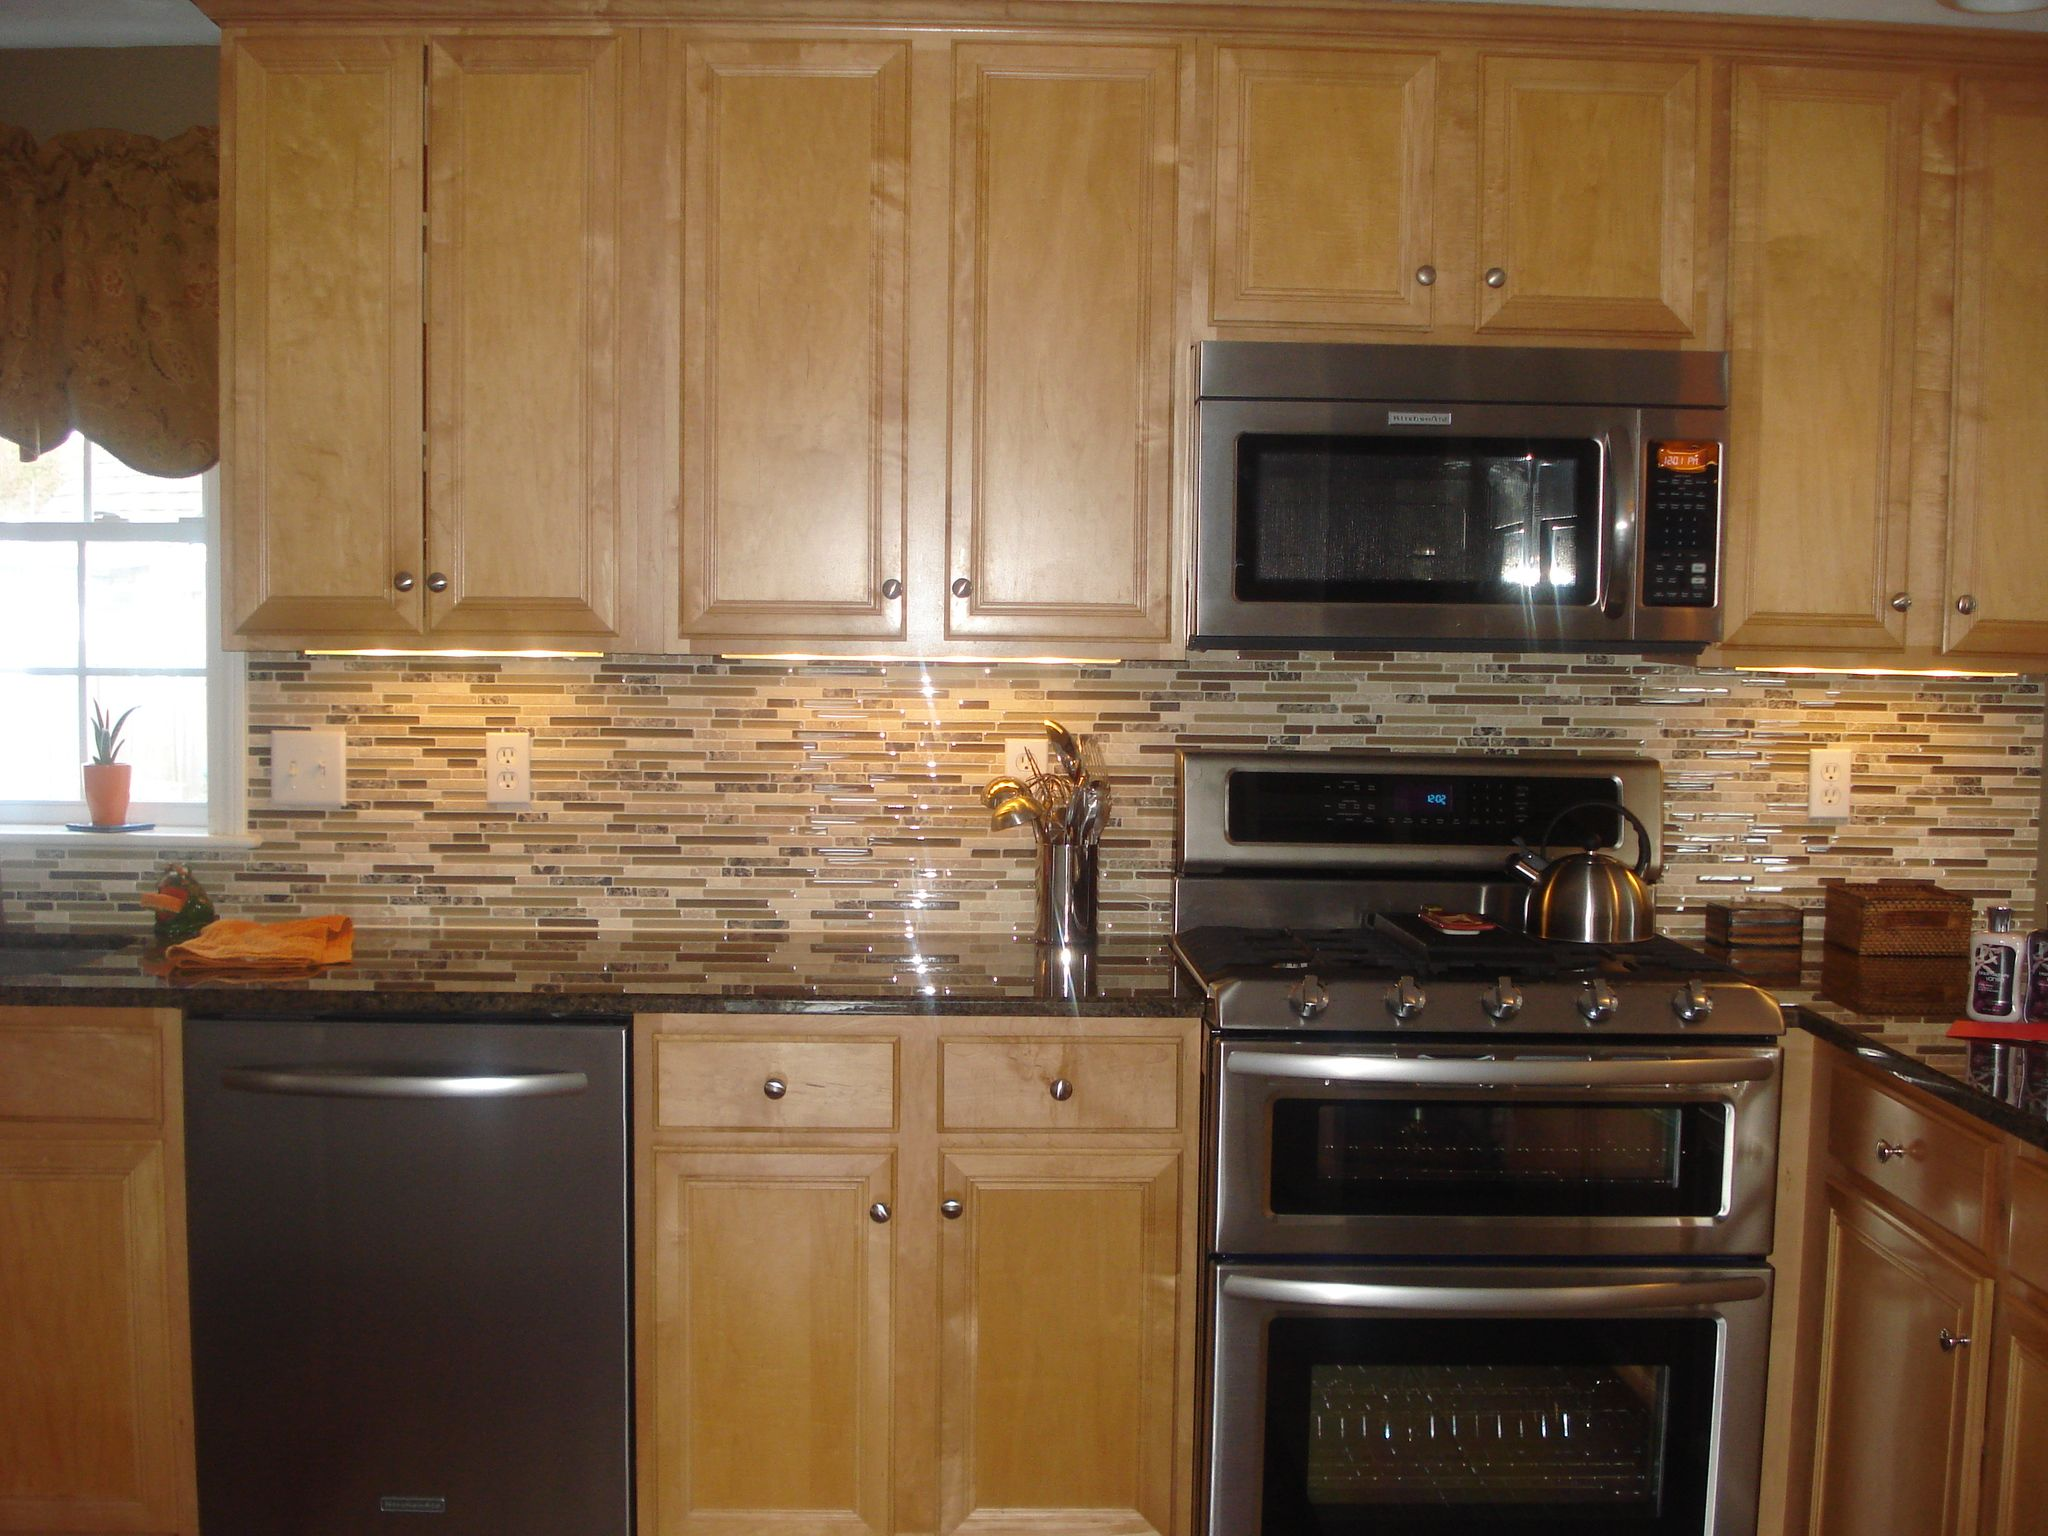 Update Kitchen Maple Cabinets Pinterest Discover And Save Creative Ideas